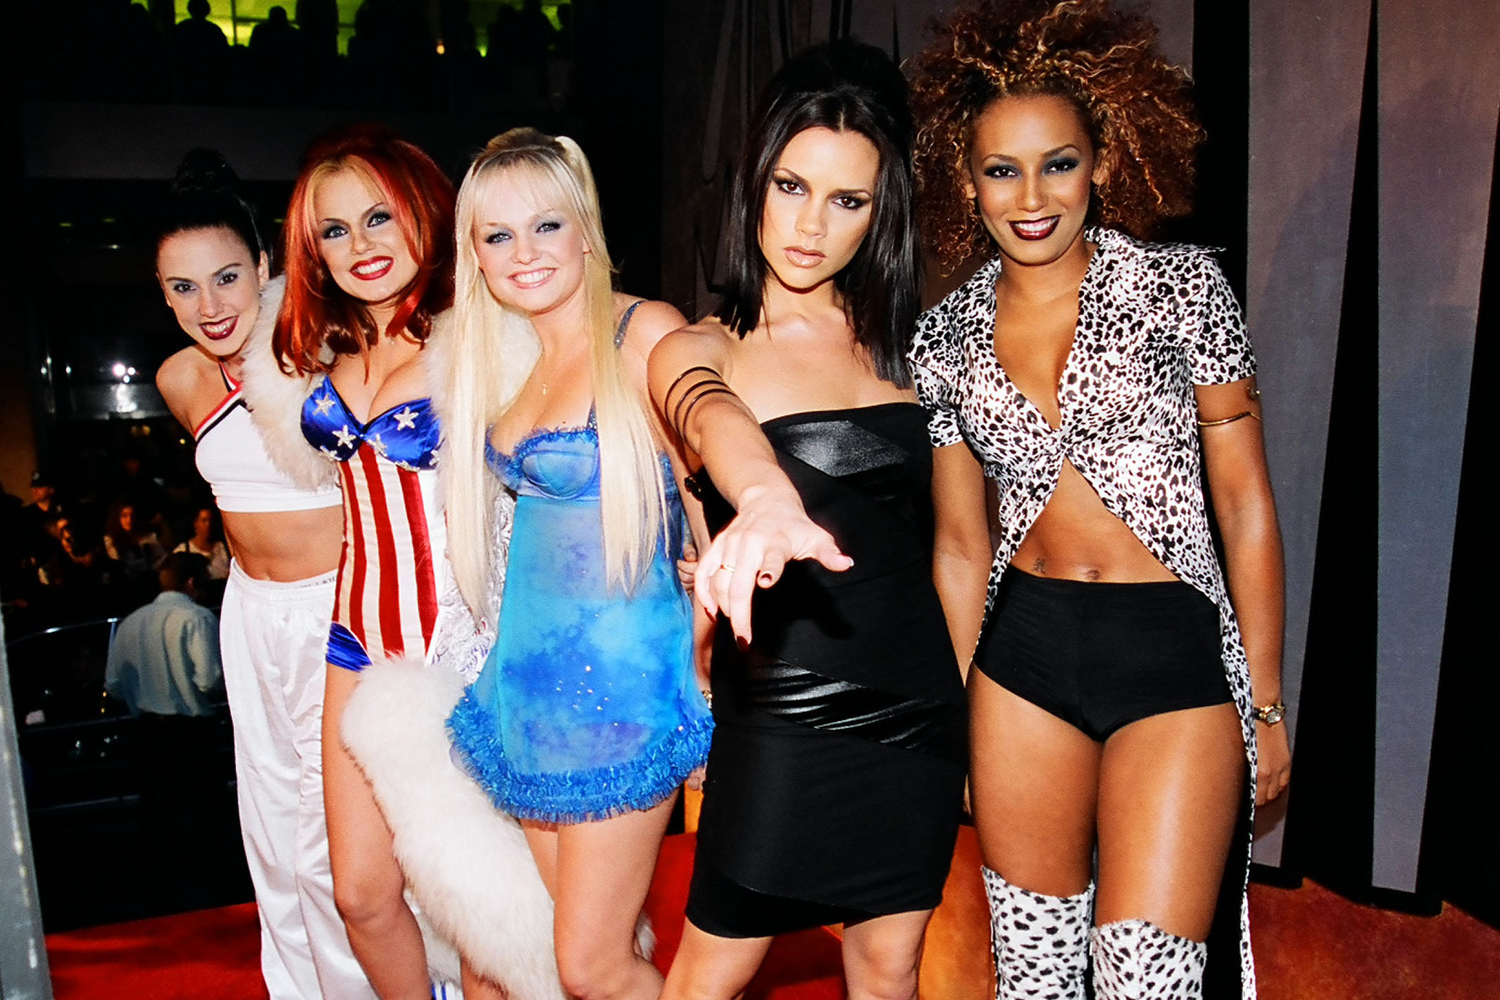 Victoria Beckham, Mel C, Emma Bunton, Geri Halliwell and Mel B from The Spice Girls